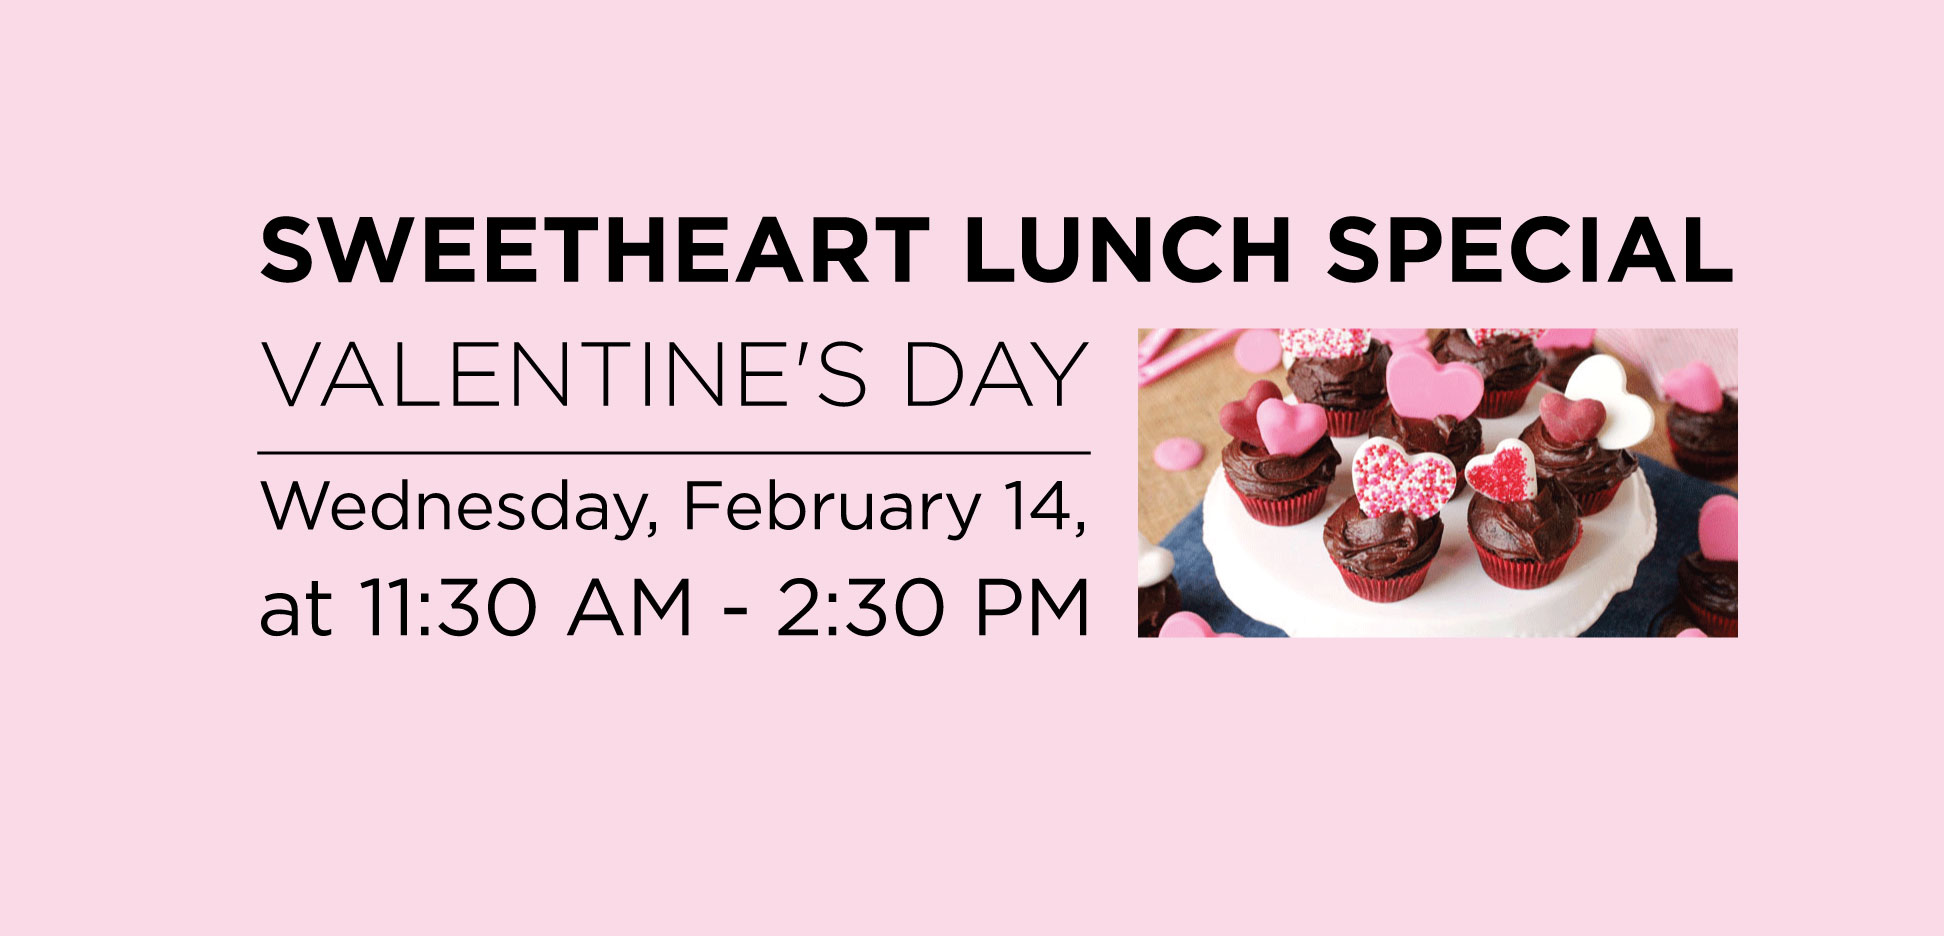 Sweetheart Lunch Special Valentine's Day, Wednesday, February 14